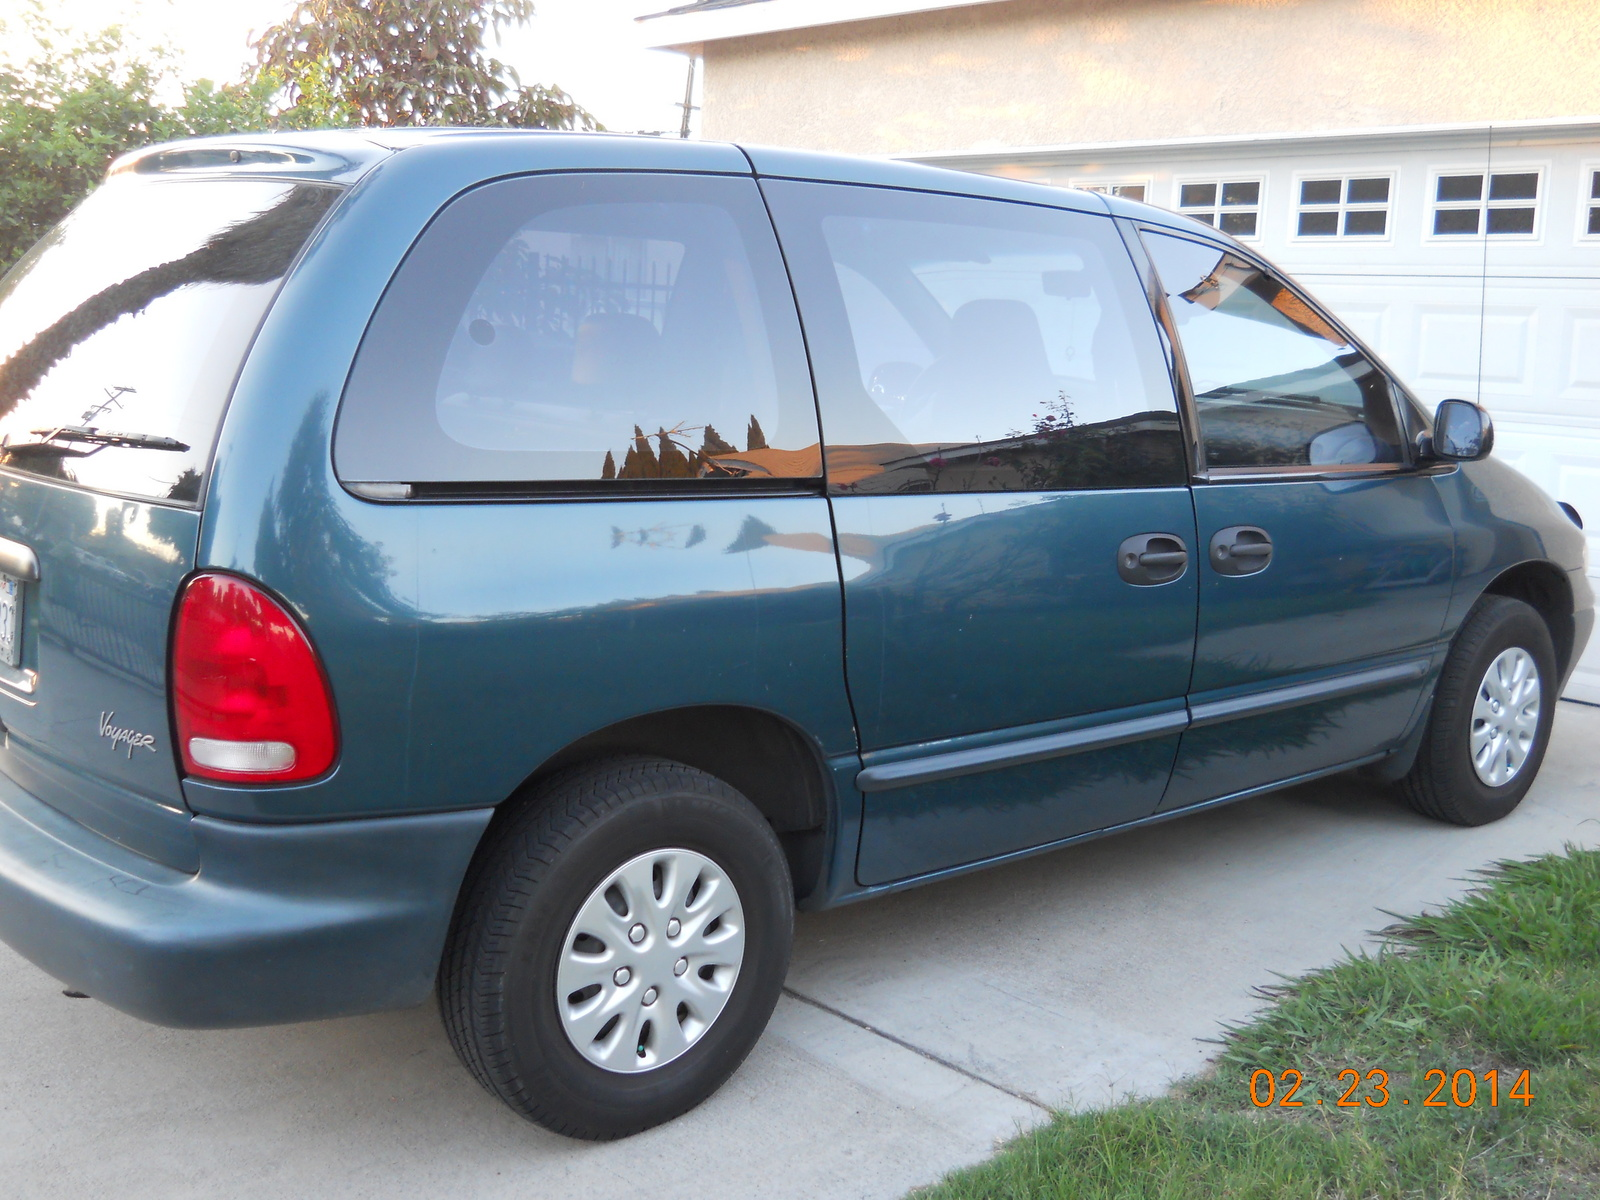 chrysler voyager 2000 - photo #13